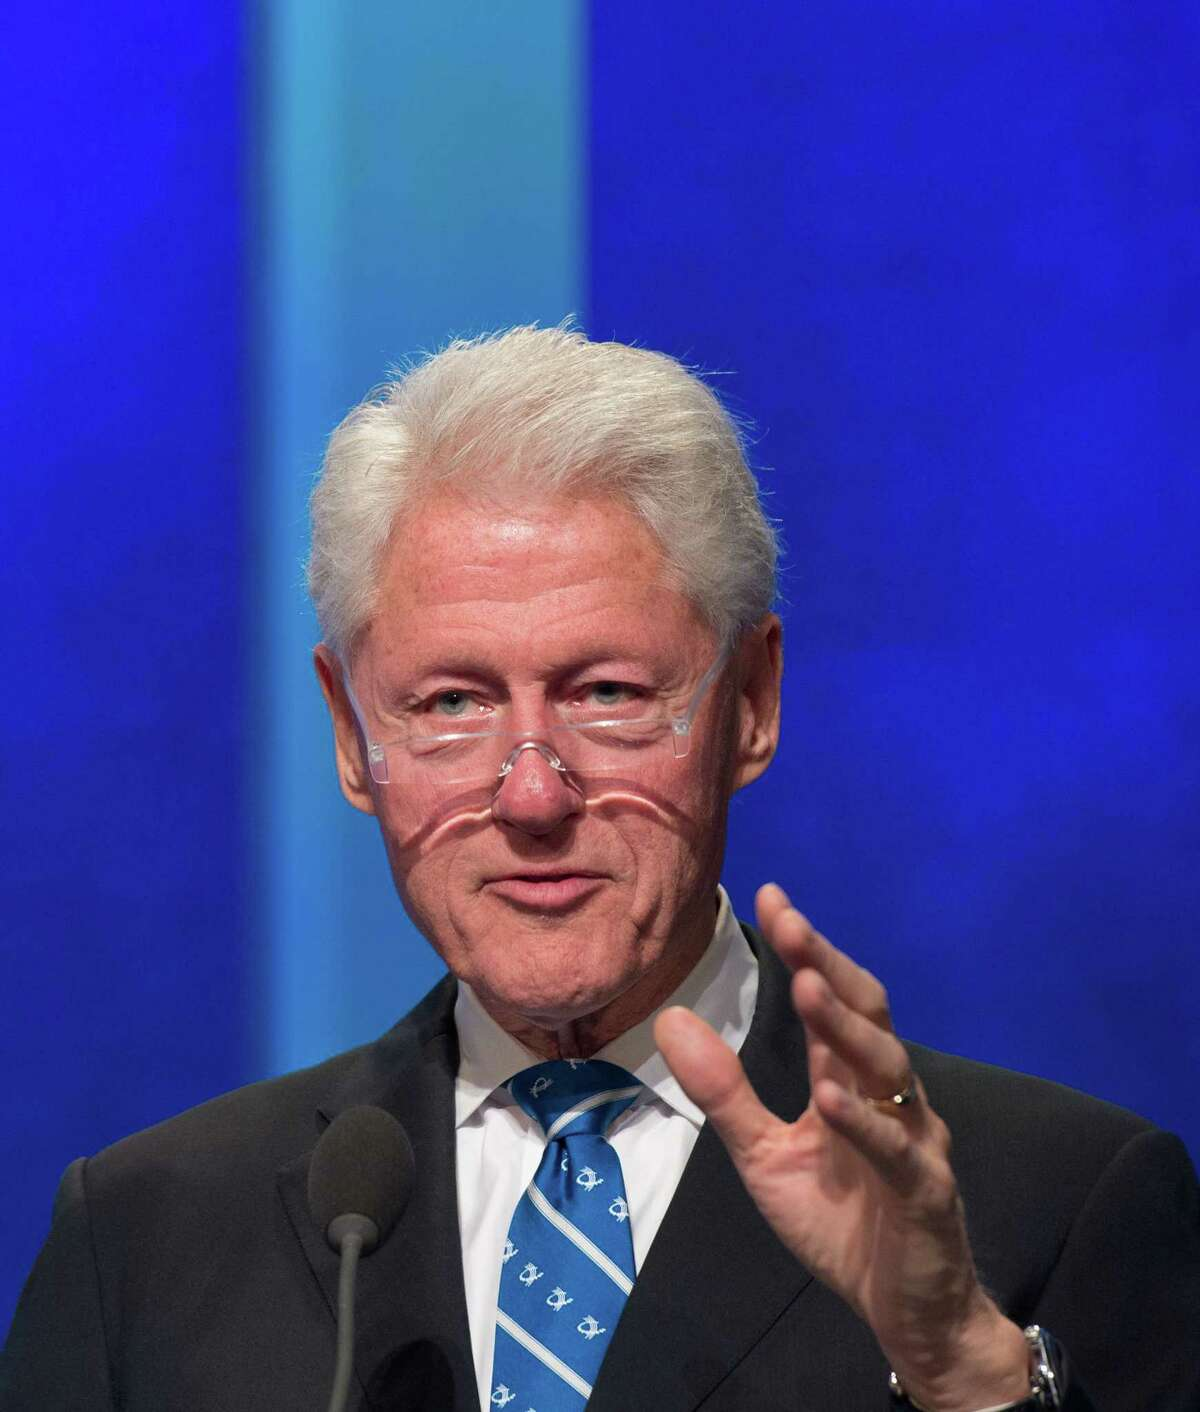 (FILES) This file photo taken on September 19, 2016 shows former US President and founder of the Clinton Foundation Bill Clinton speaking at the Clinton Global Initiative in New York. Clinton is writing his first thriller about drama behind the scenes in the White House, his publishers announced on May 8, 2017. Clinton is collaborating with bestselling US author James Patterson on